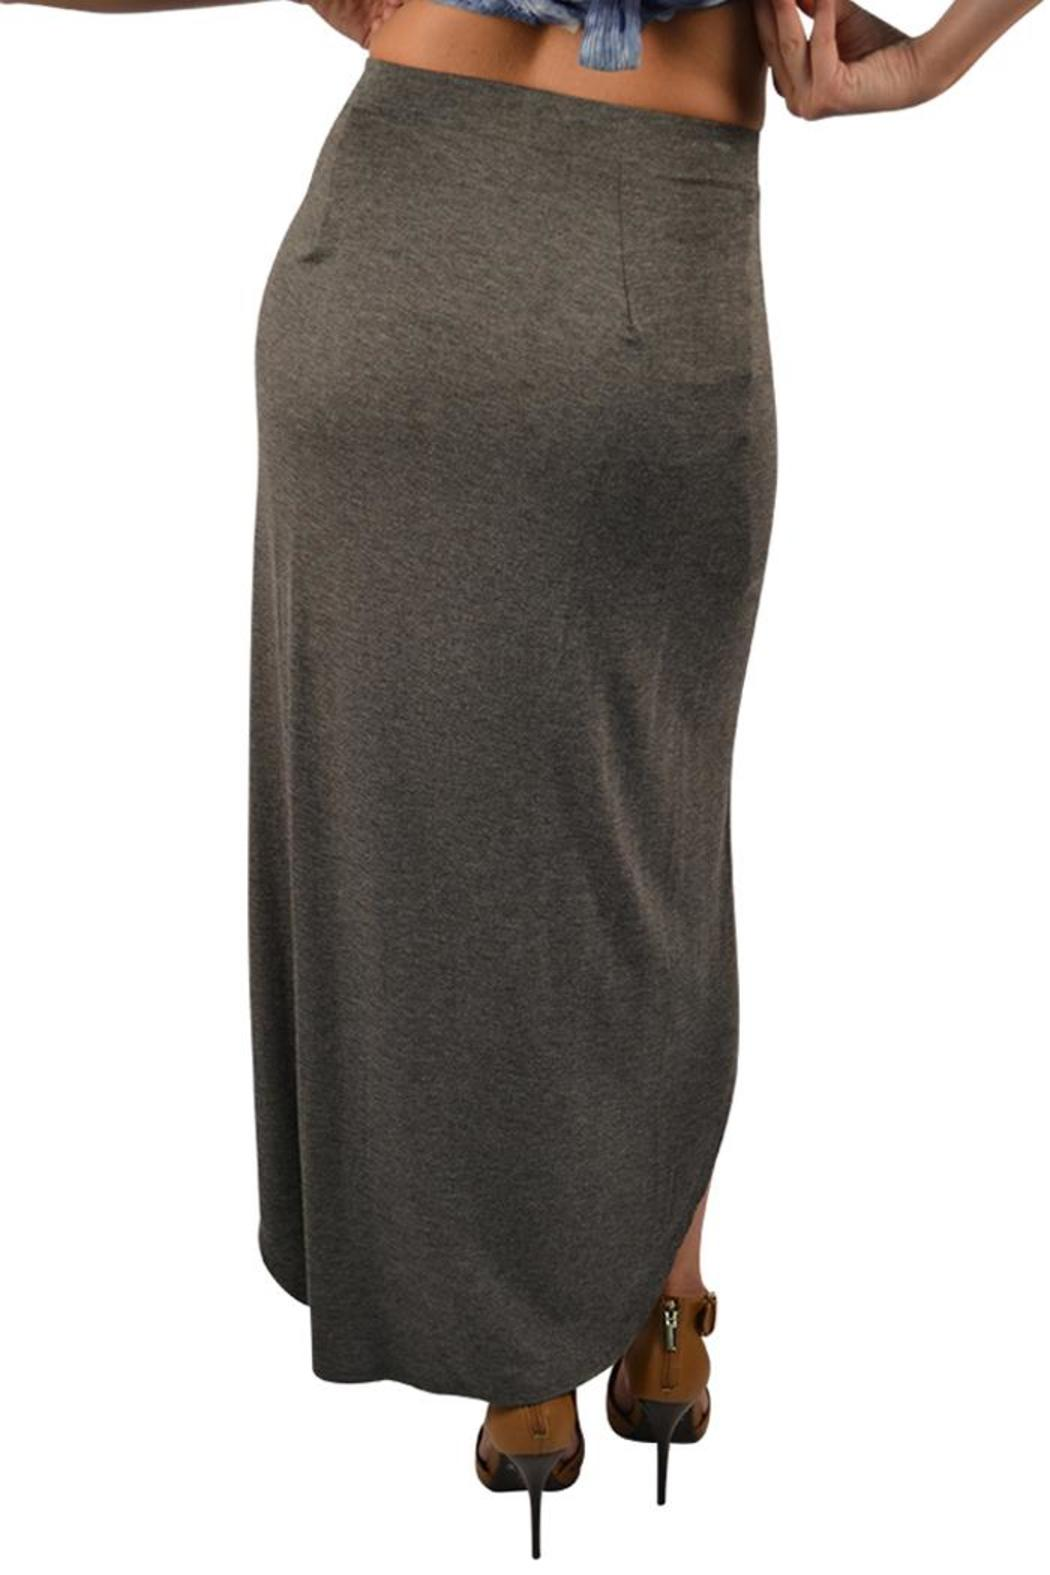 poche 1913 grey high low skirt from lafayette by brothers